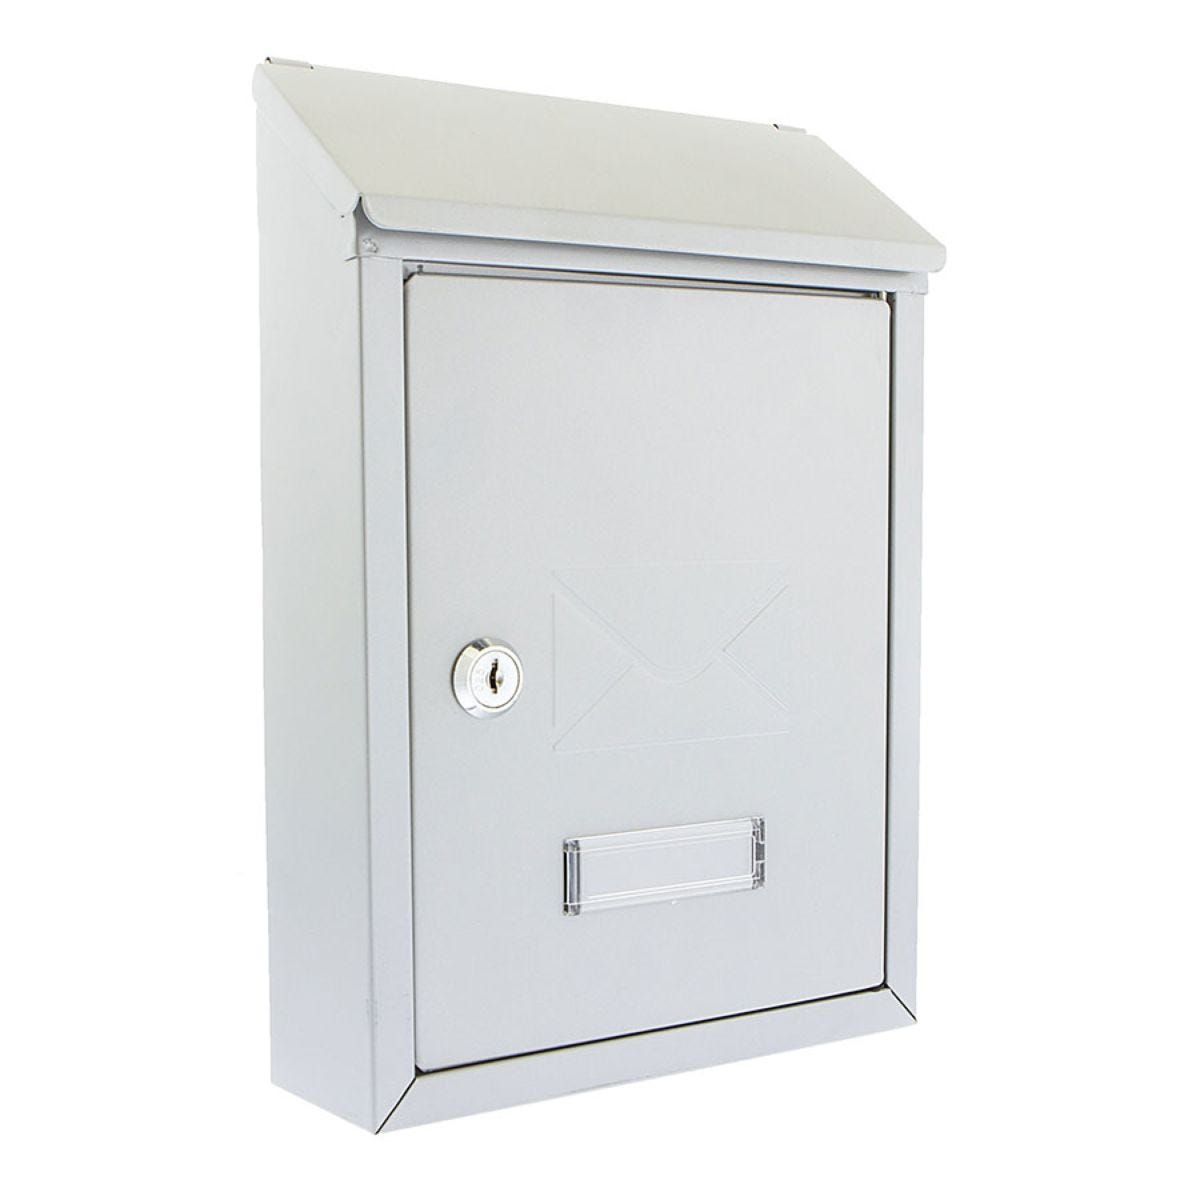 Sterling Avon Compact Post Box - Silver